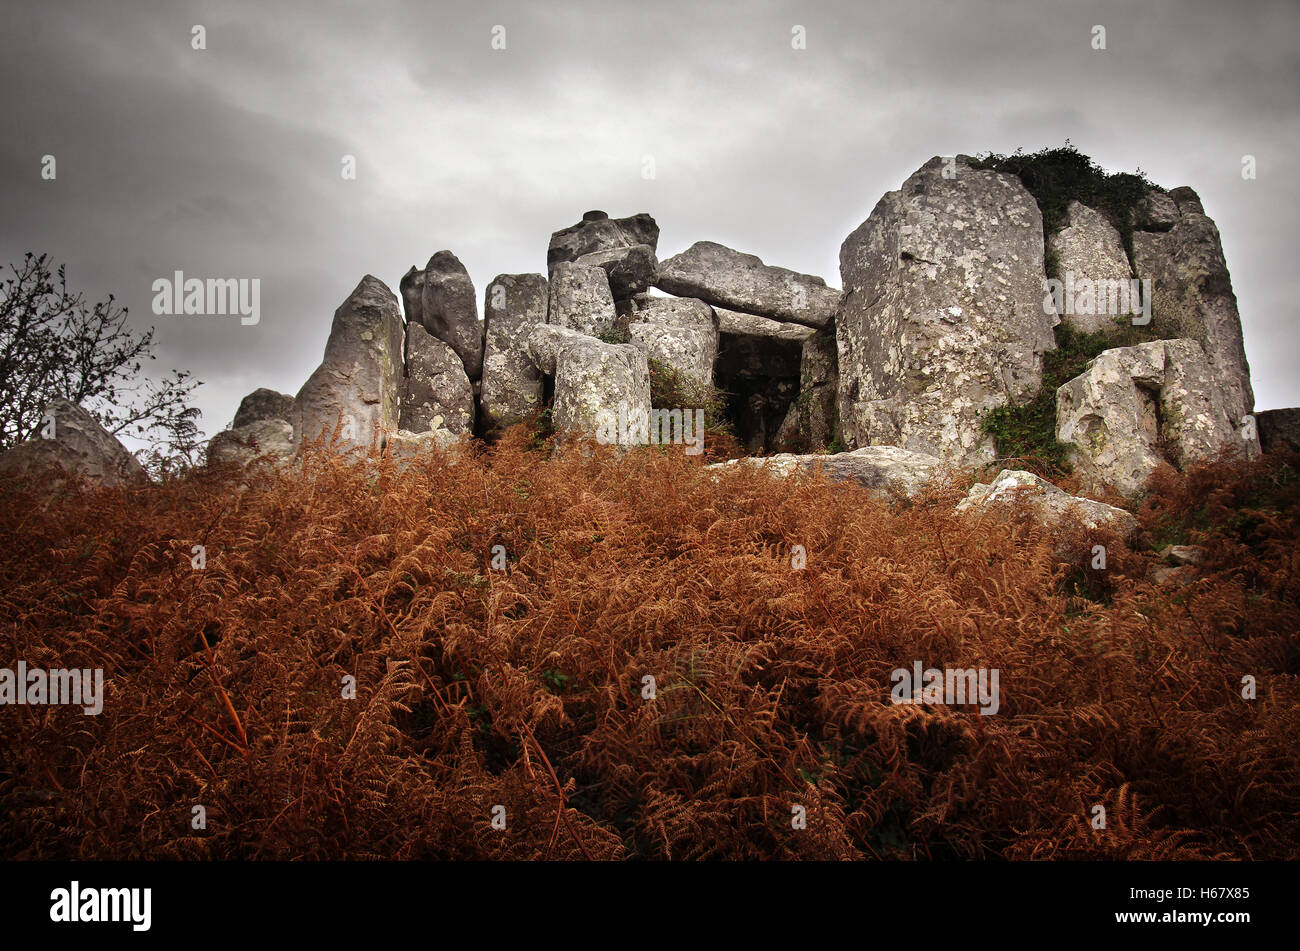 Prehistorical granite dolmen, temple of the dead, in Sintra Portugal - Stock Image